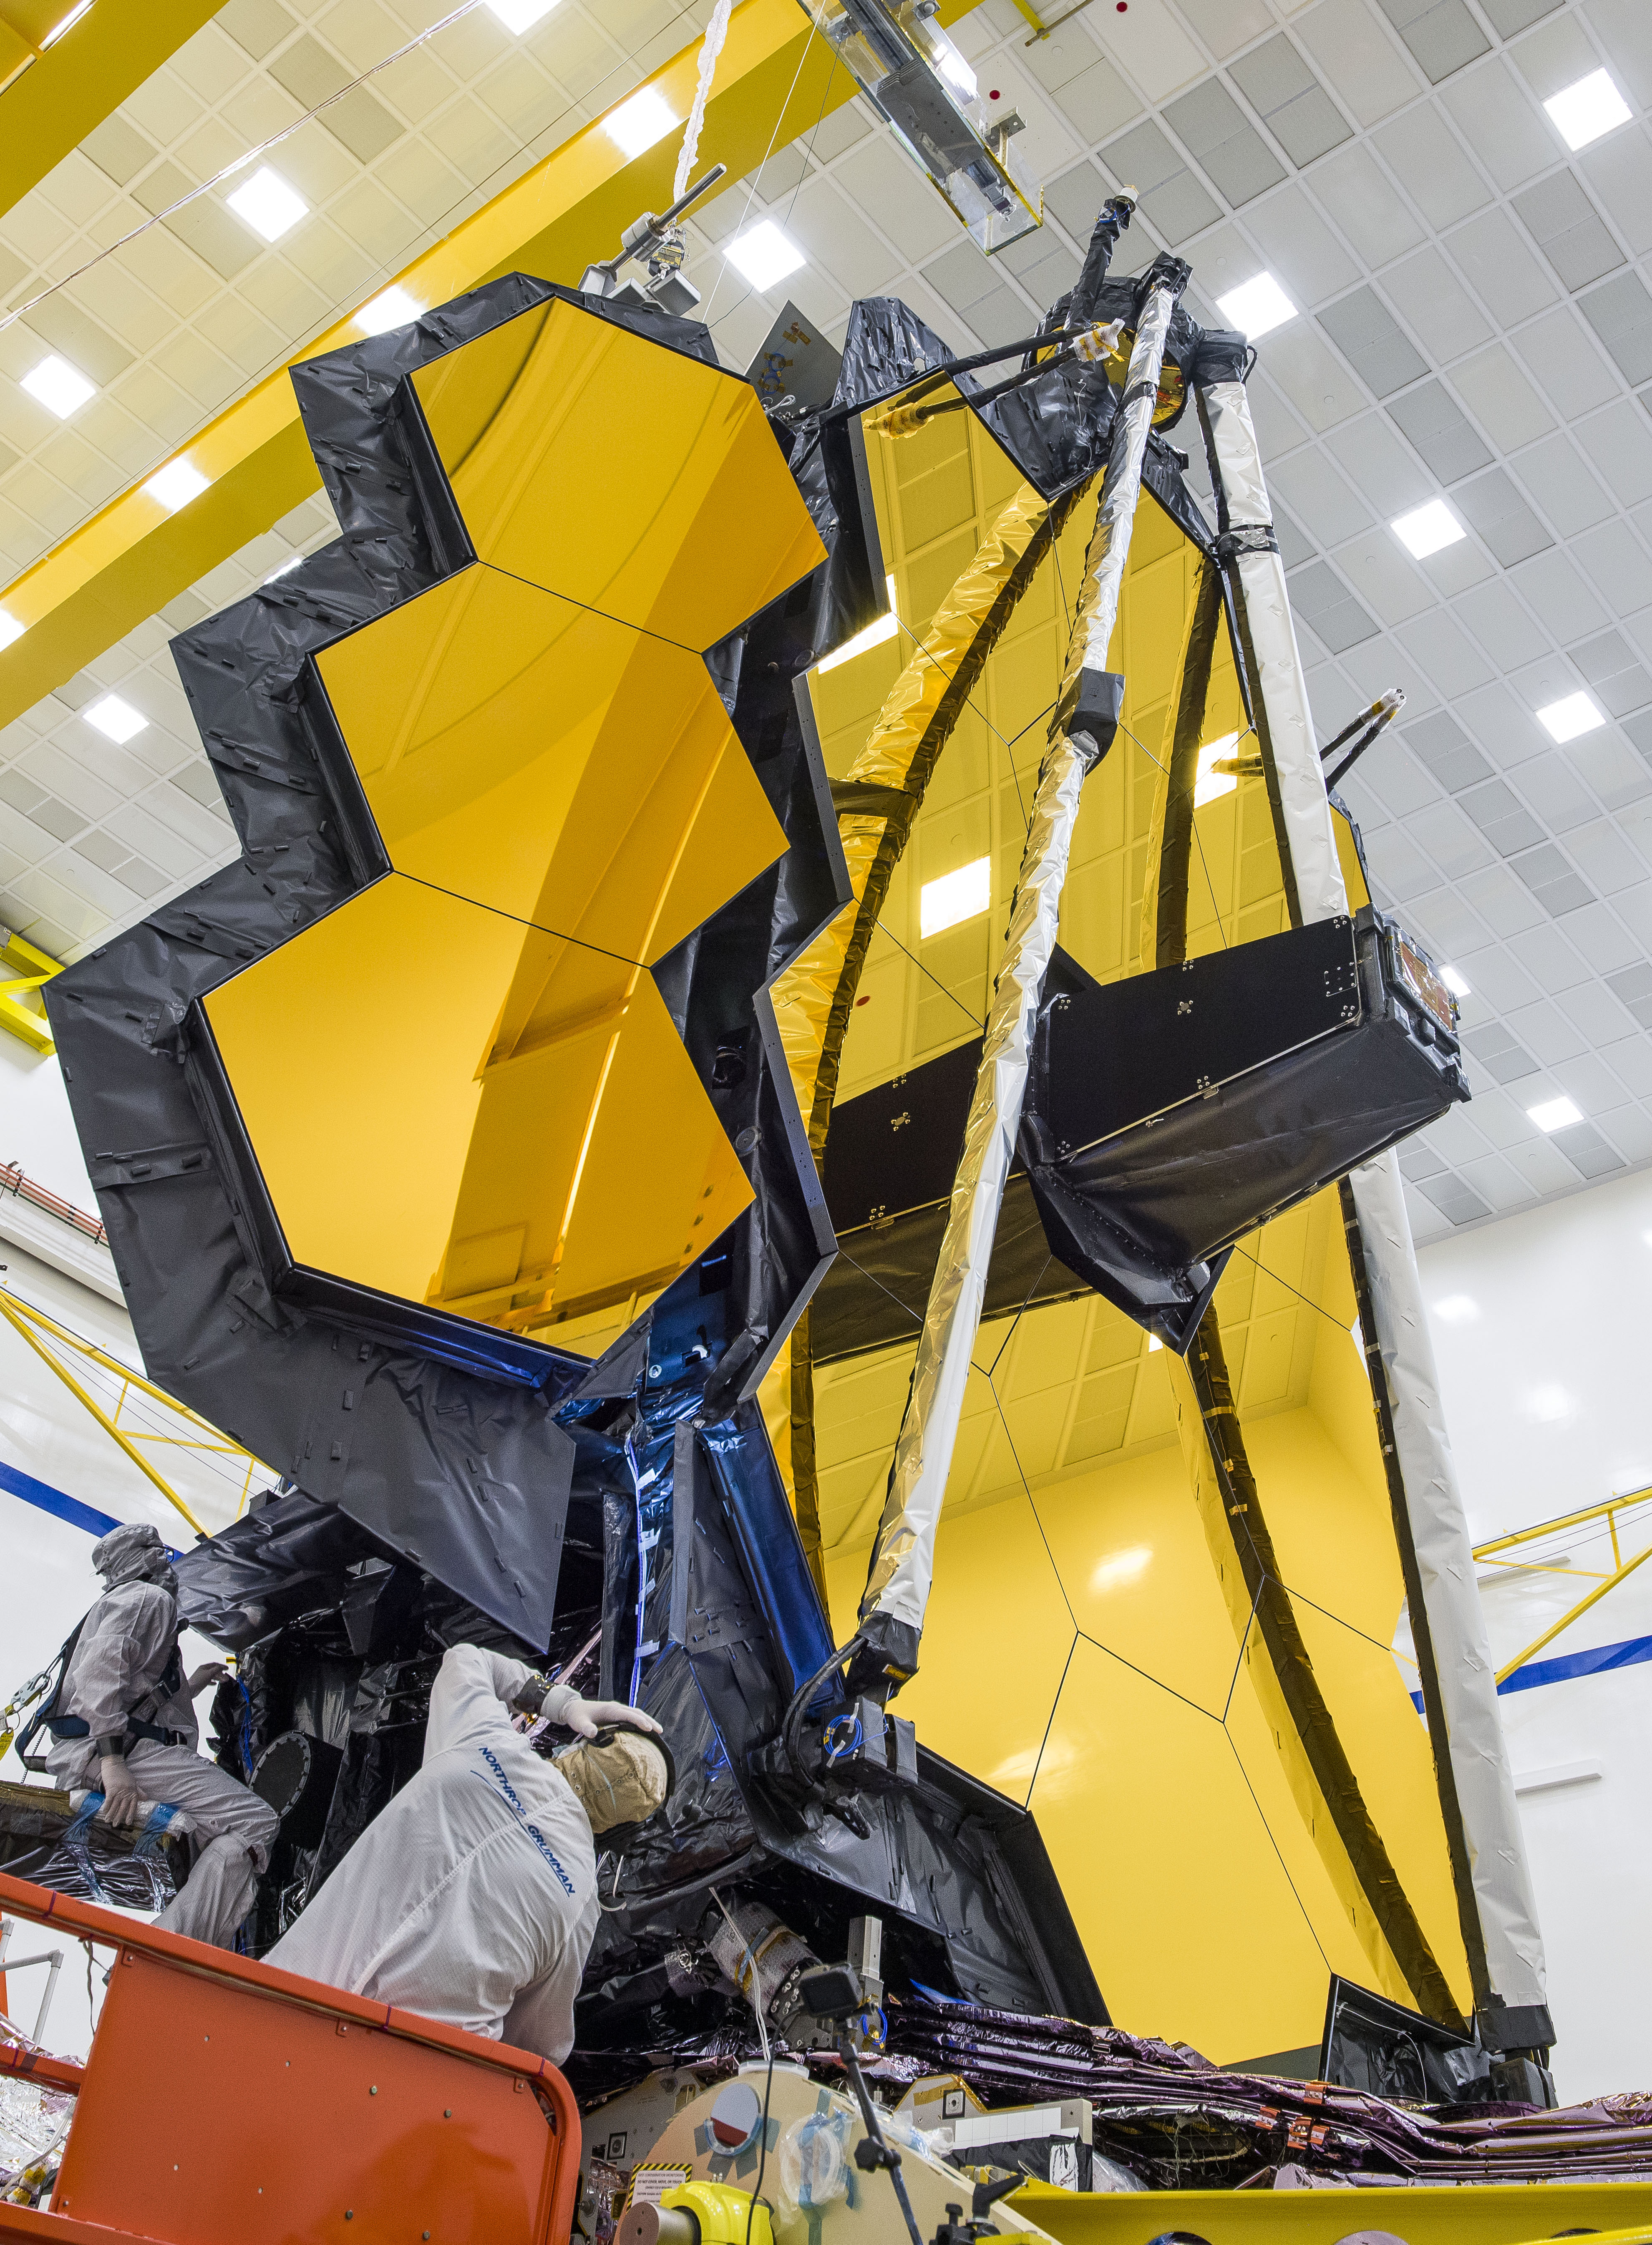 NASA's James Webb space telescope fully deployed its primary mirror